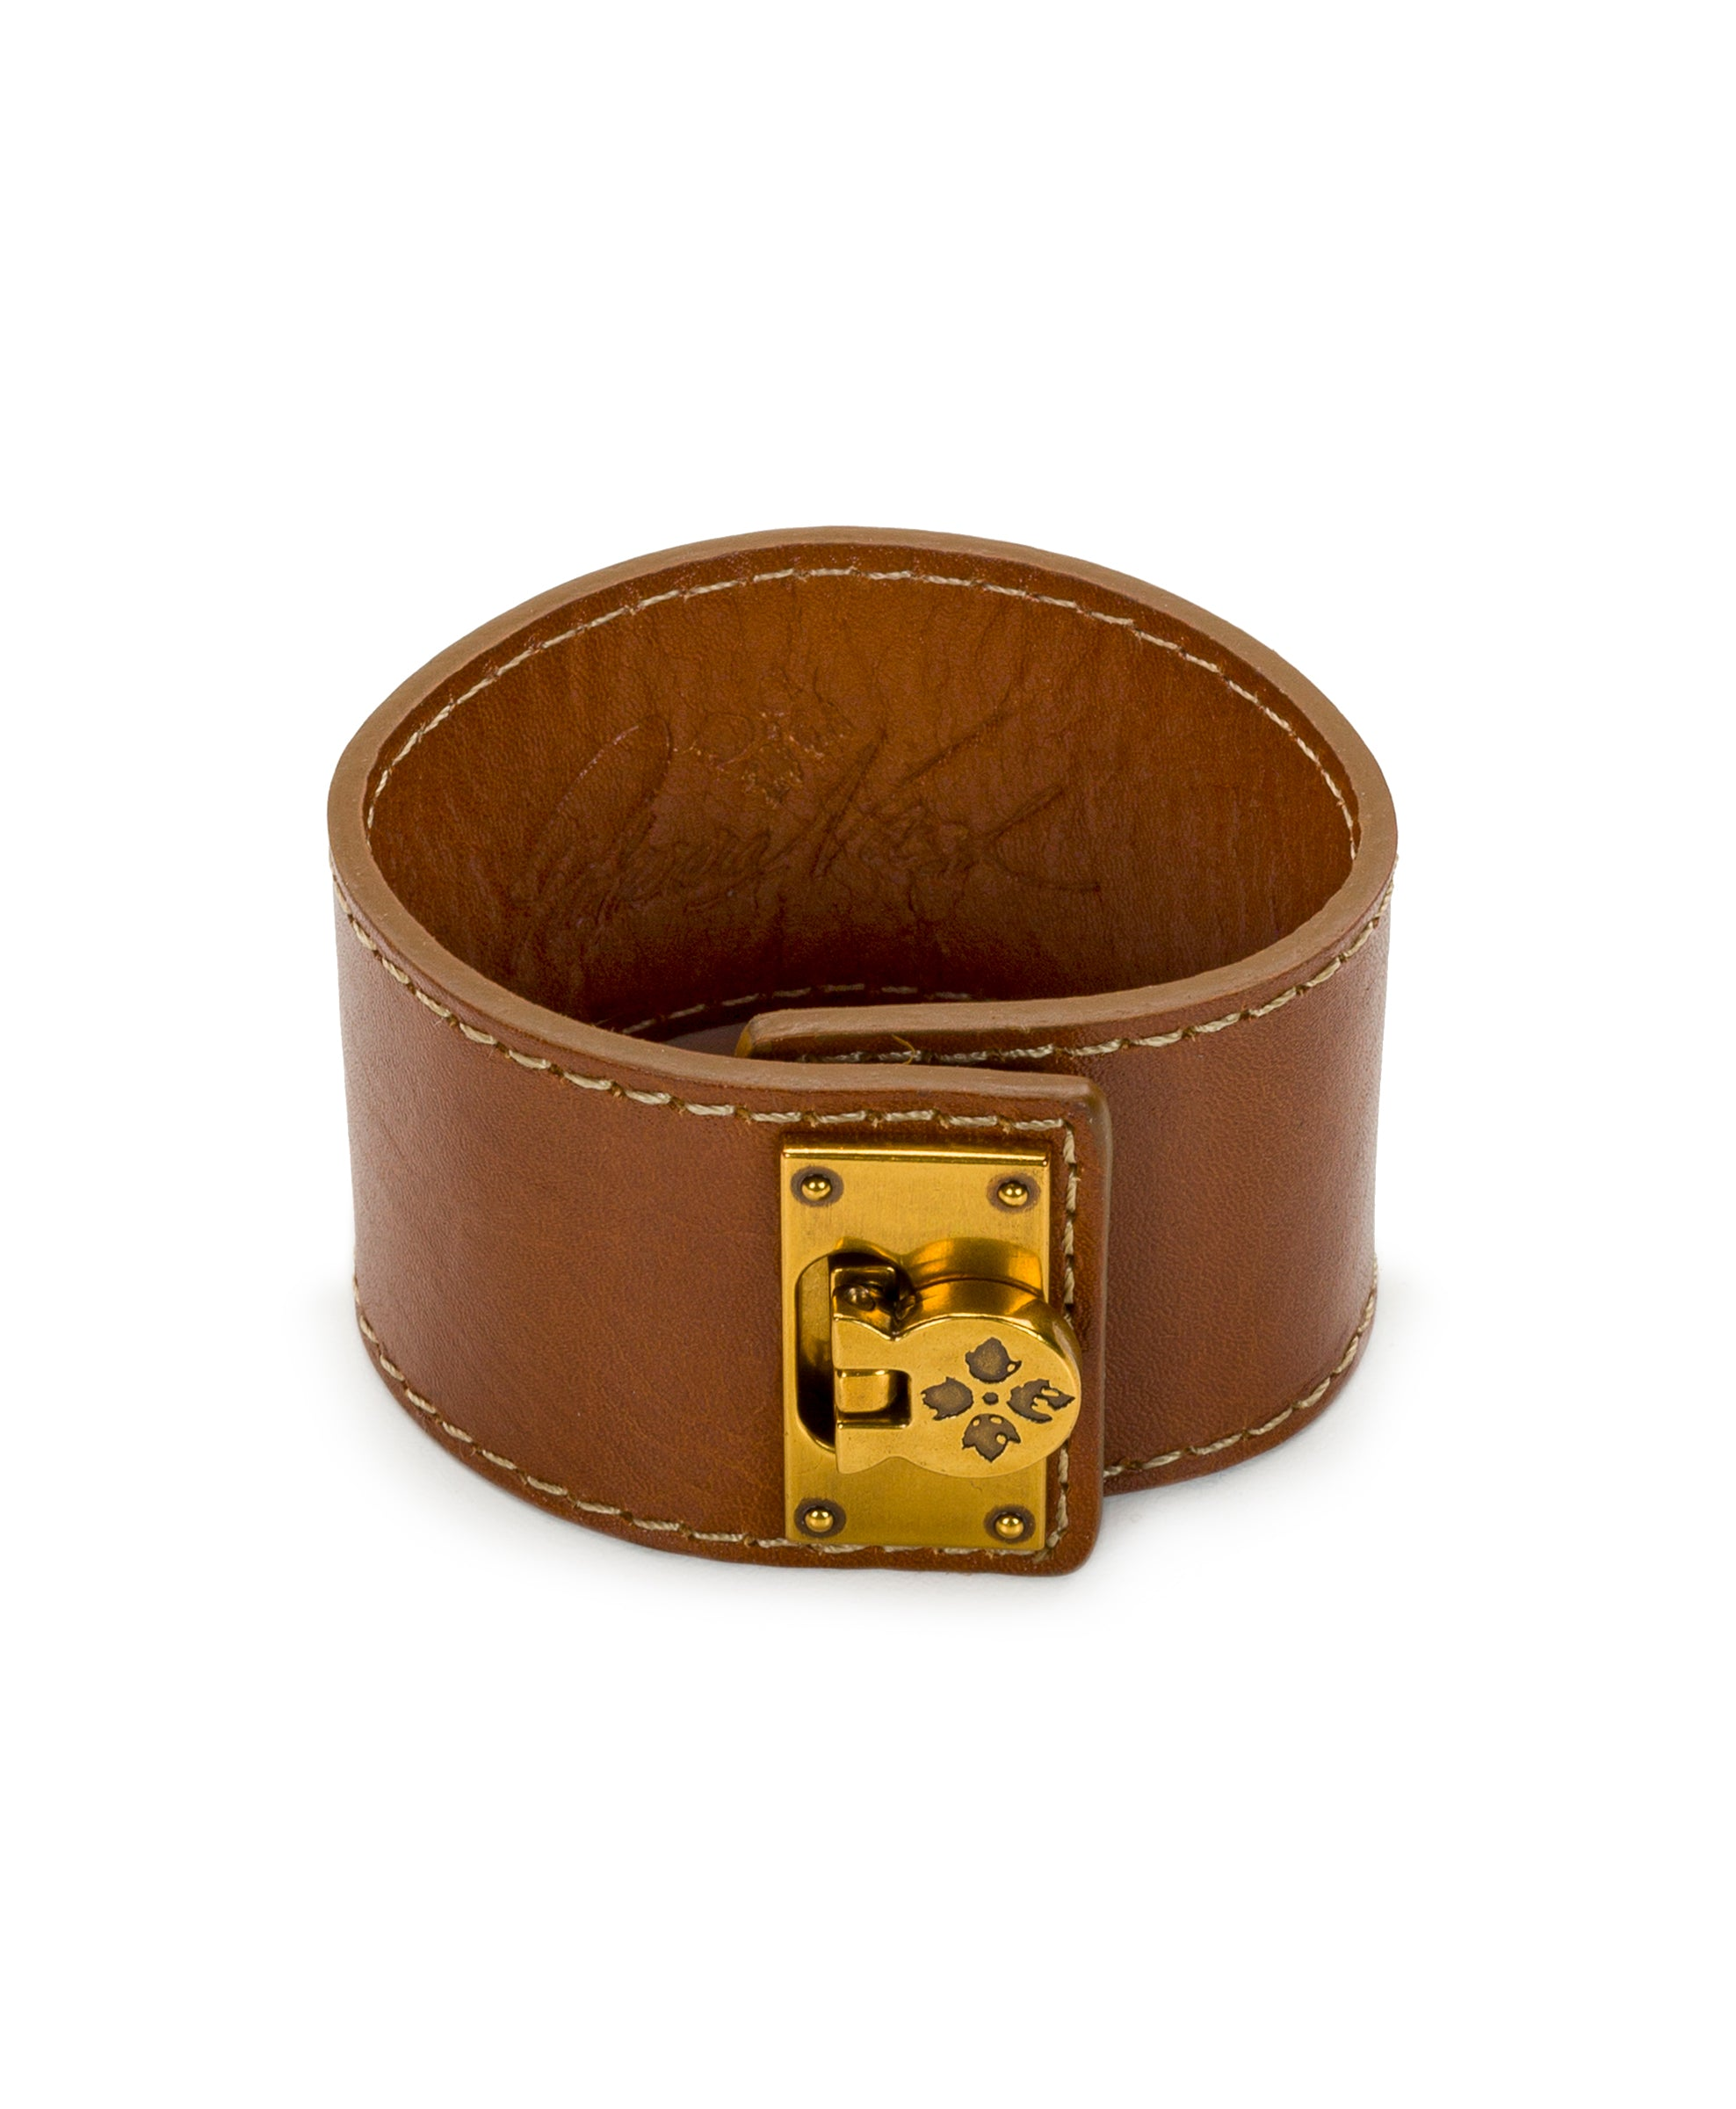 Irena Tan Leather Cuff - Irena Tan Leather Cuff